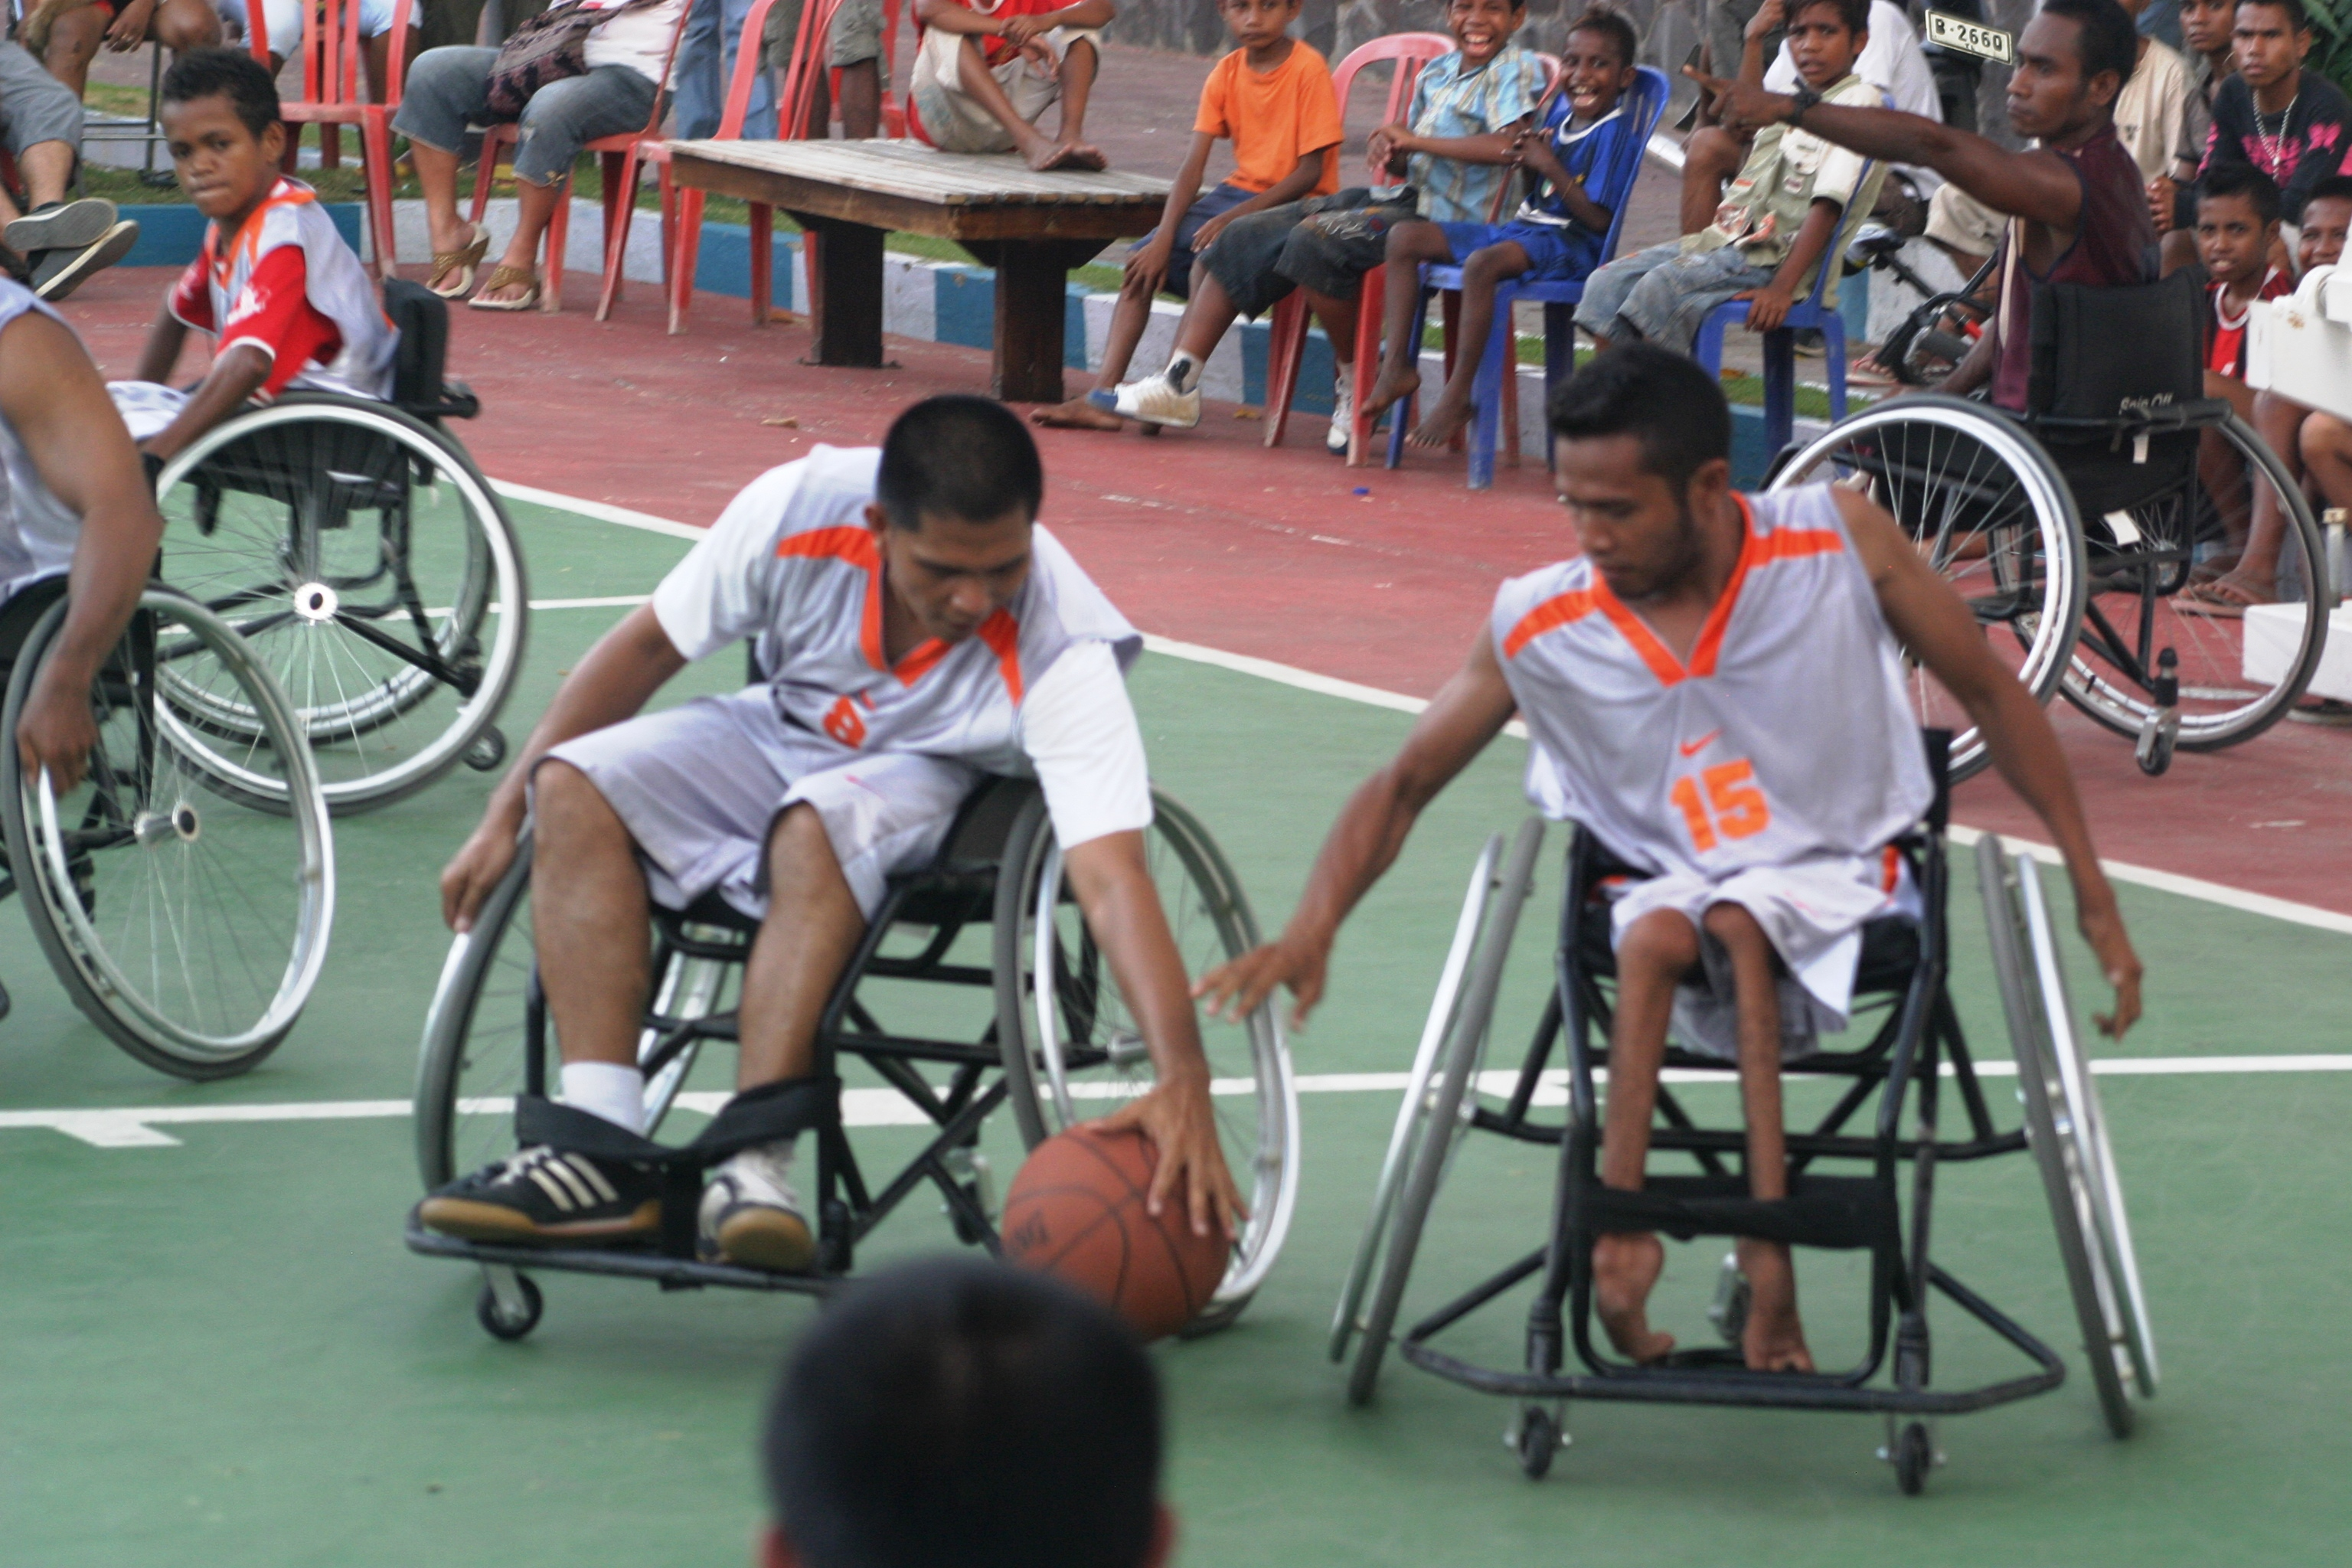 Young men with disabilities use specially designed wheelchairs to play basketball in Timor-Leste. Photo by Kathryn Outhred for DFAT